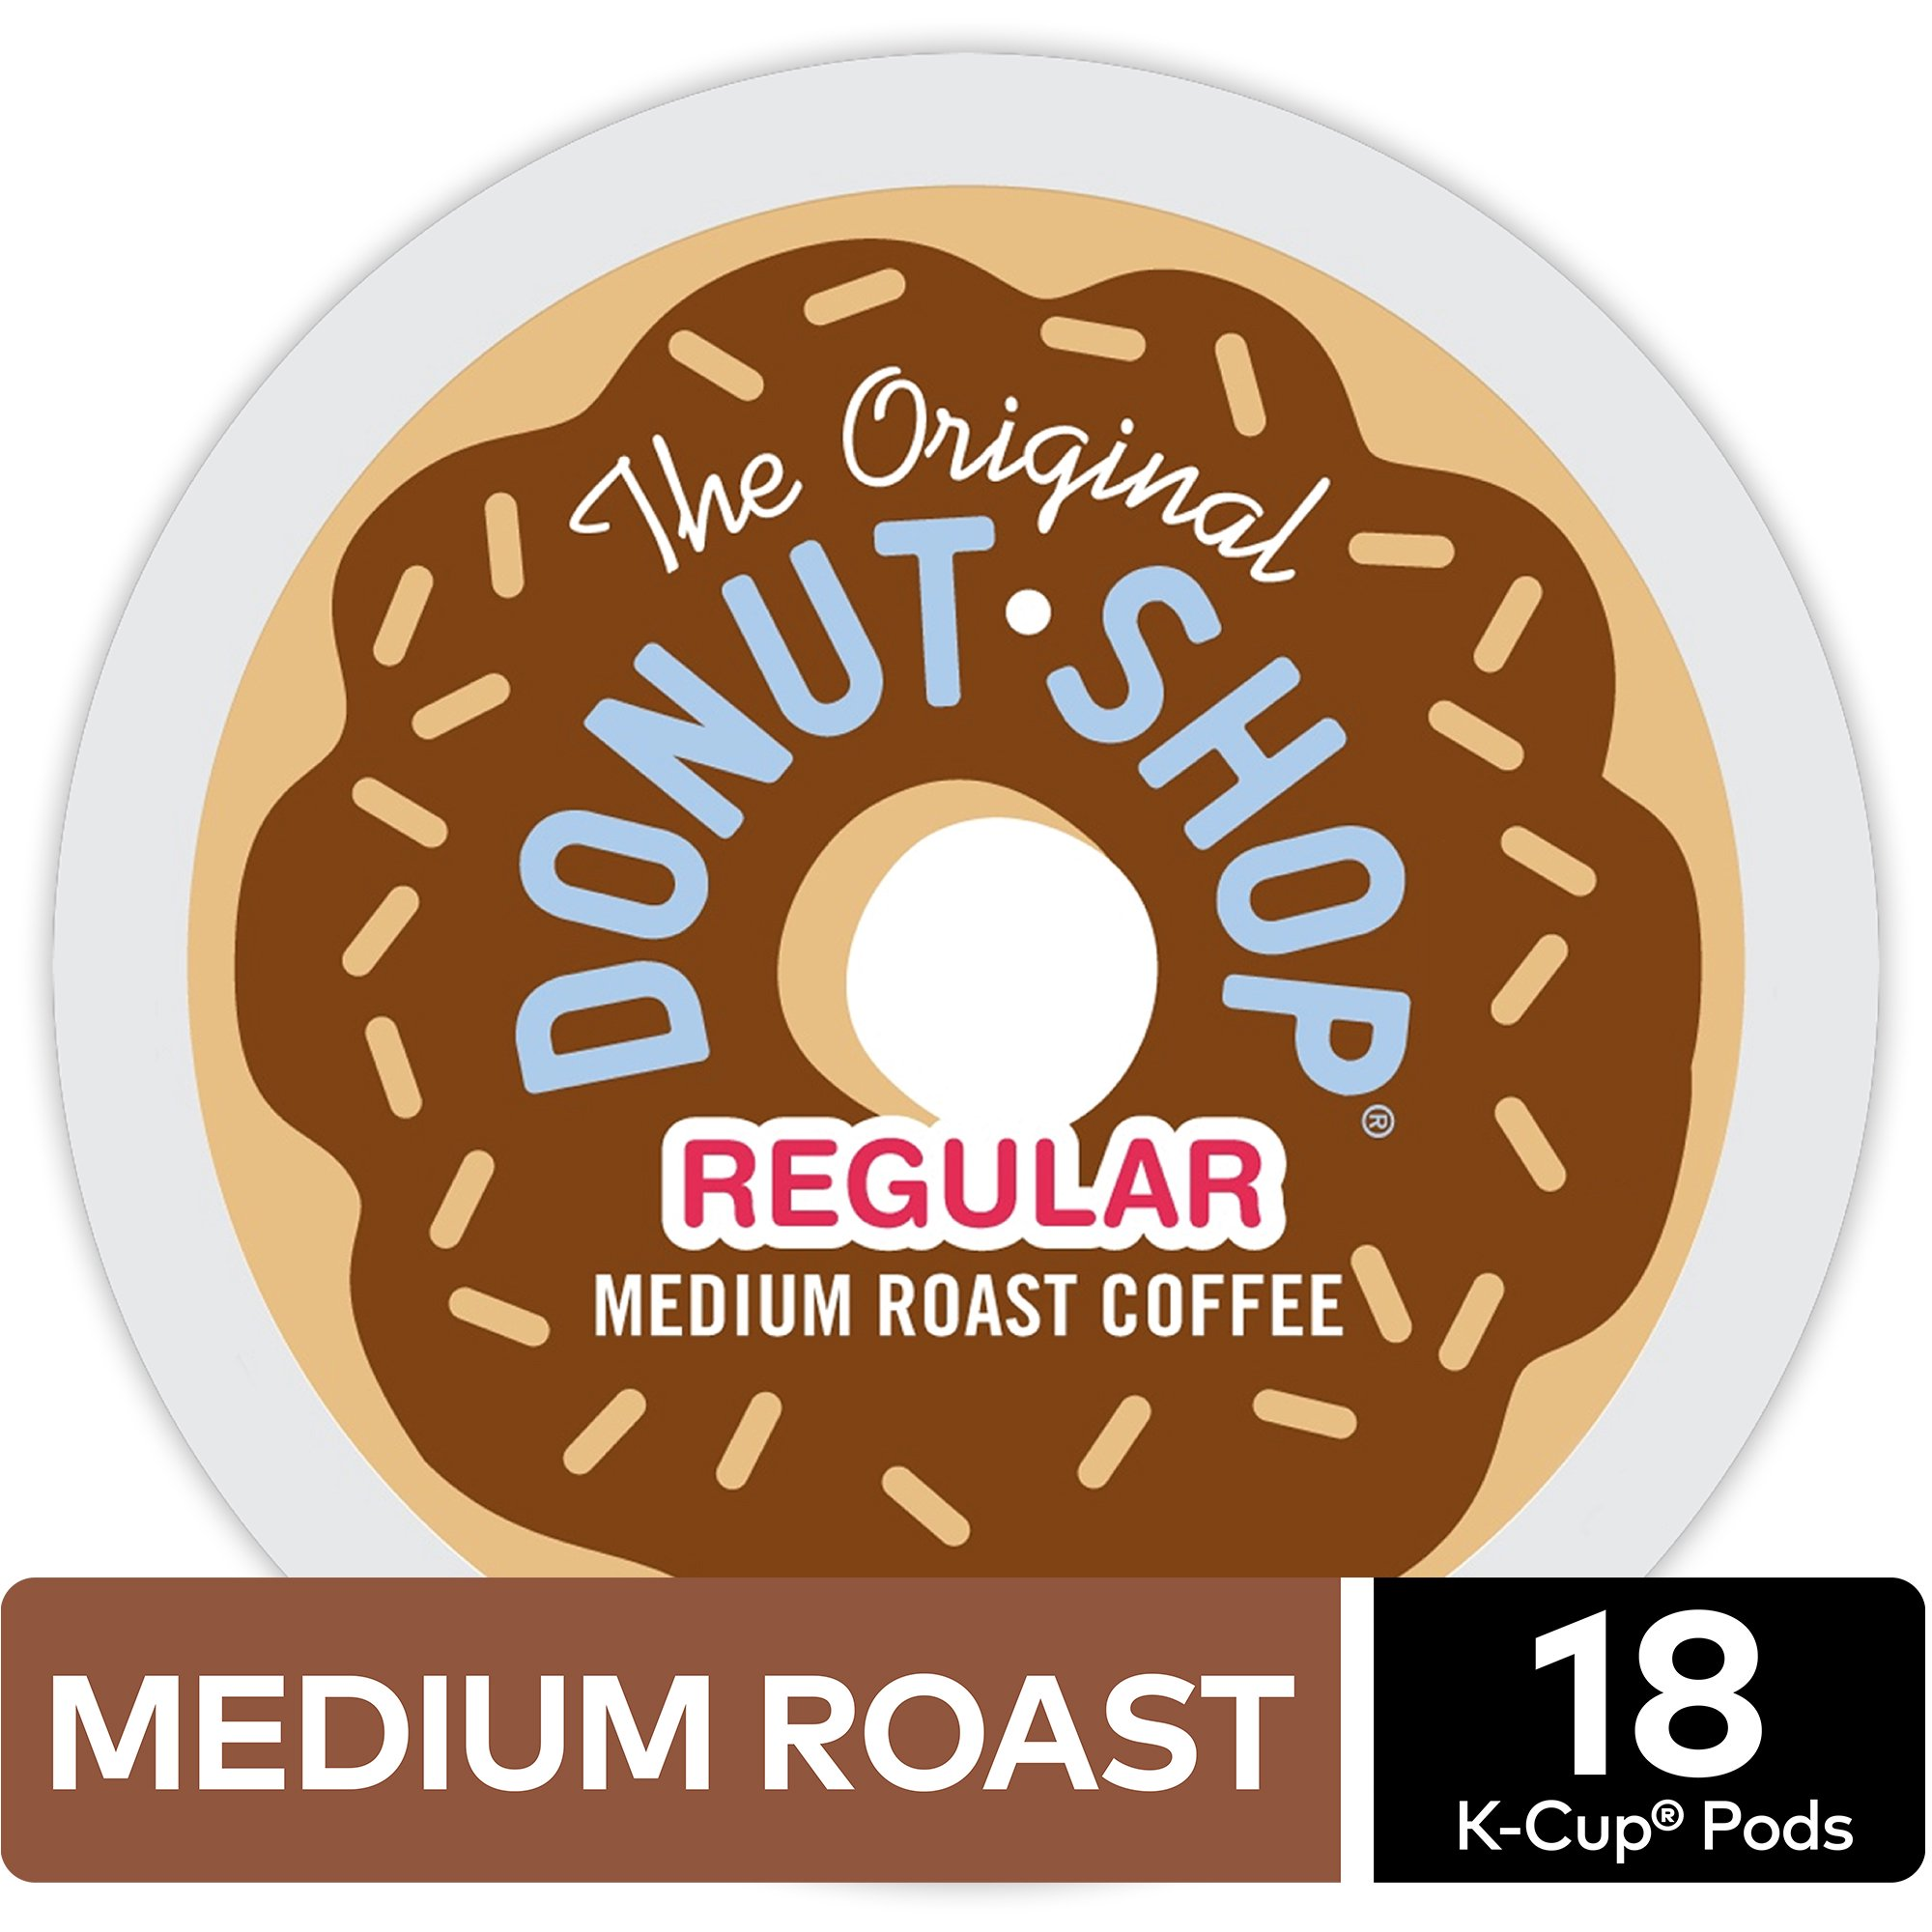 The Original Donut Shop Regular K-Cup Coffee Pods, Medium Roast, 18 Count for Keurig Brewers